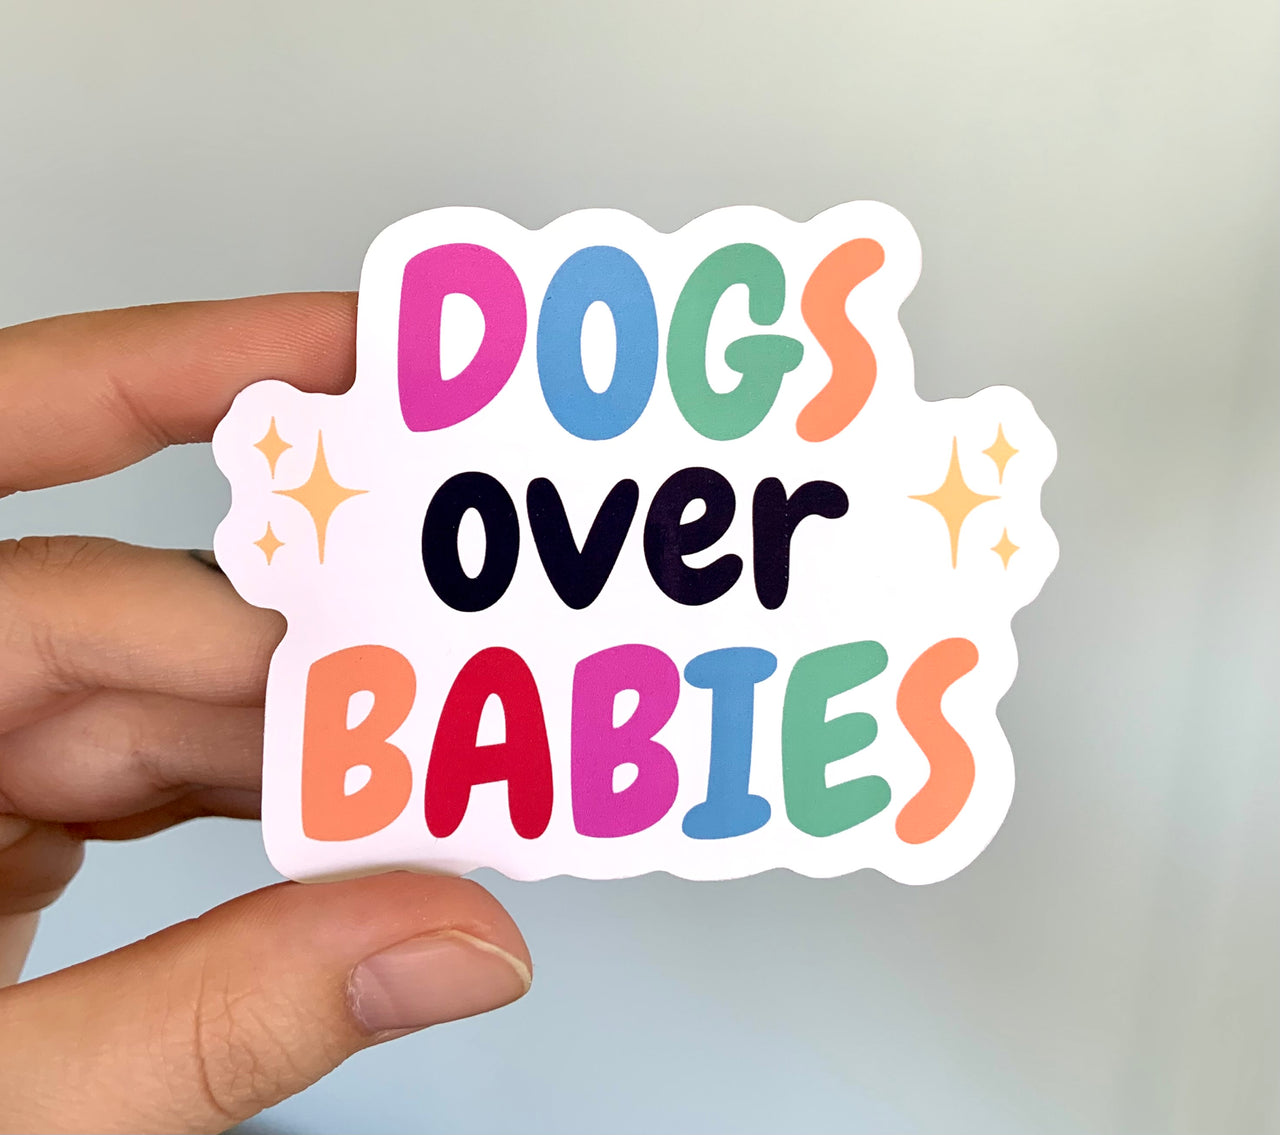 Dogs over babies (pack of 3 or 5 stickers)